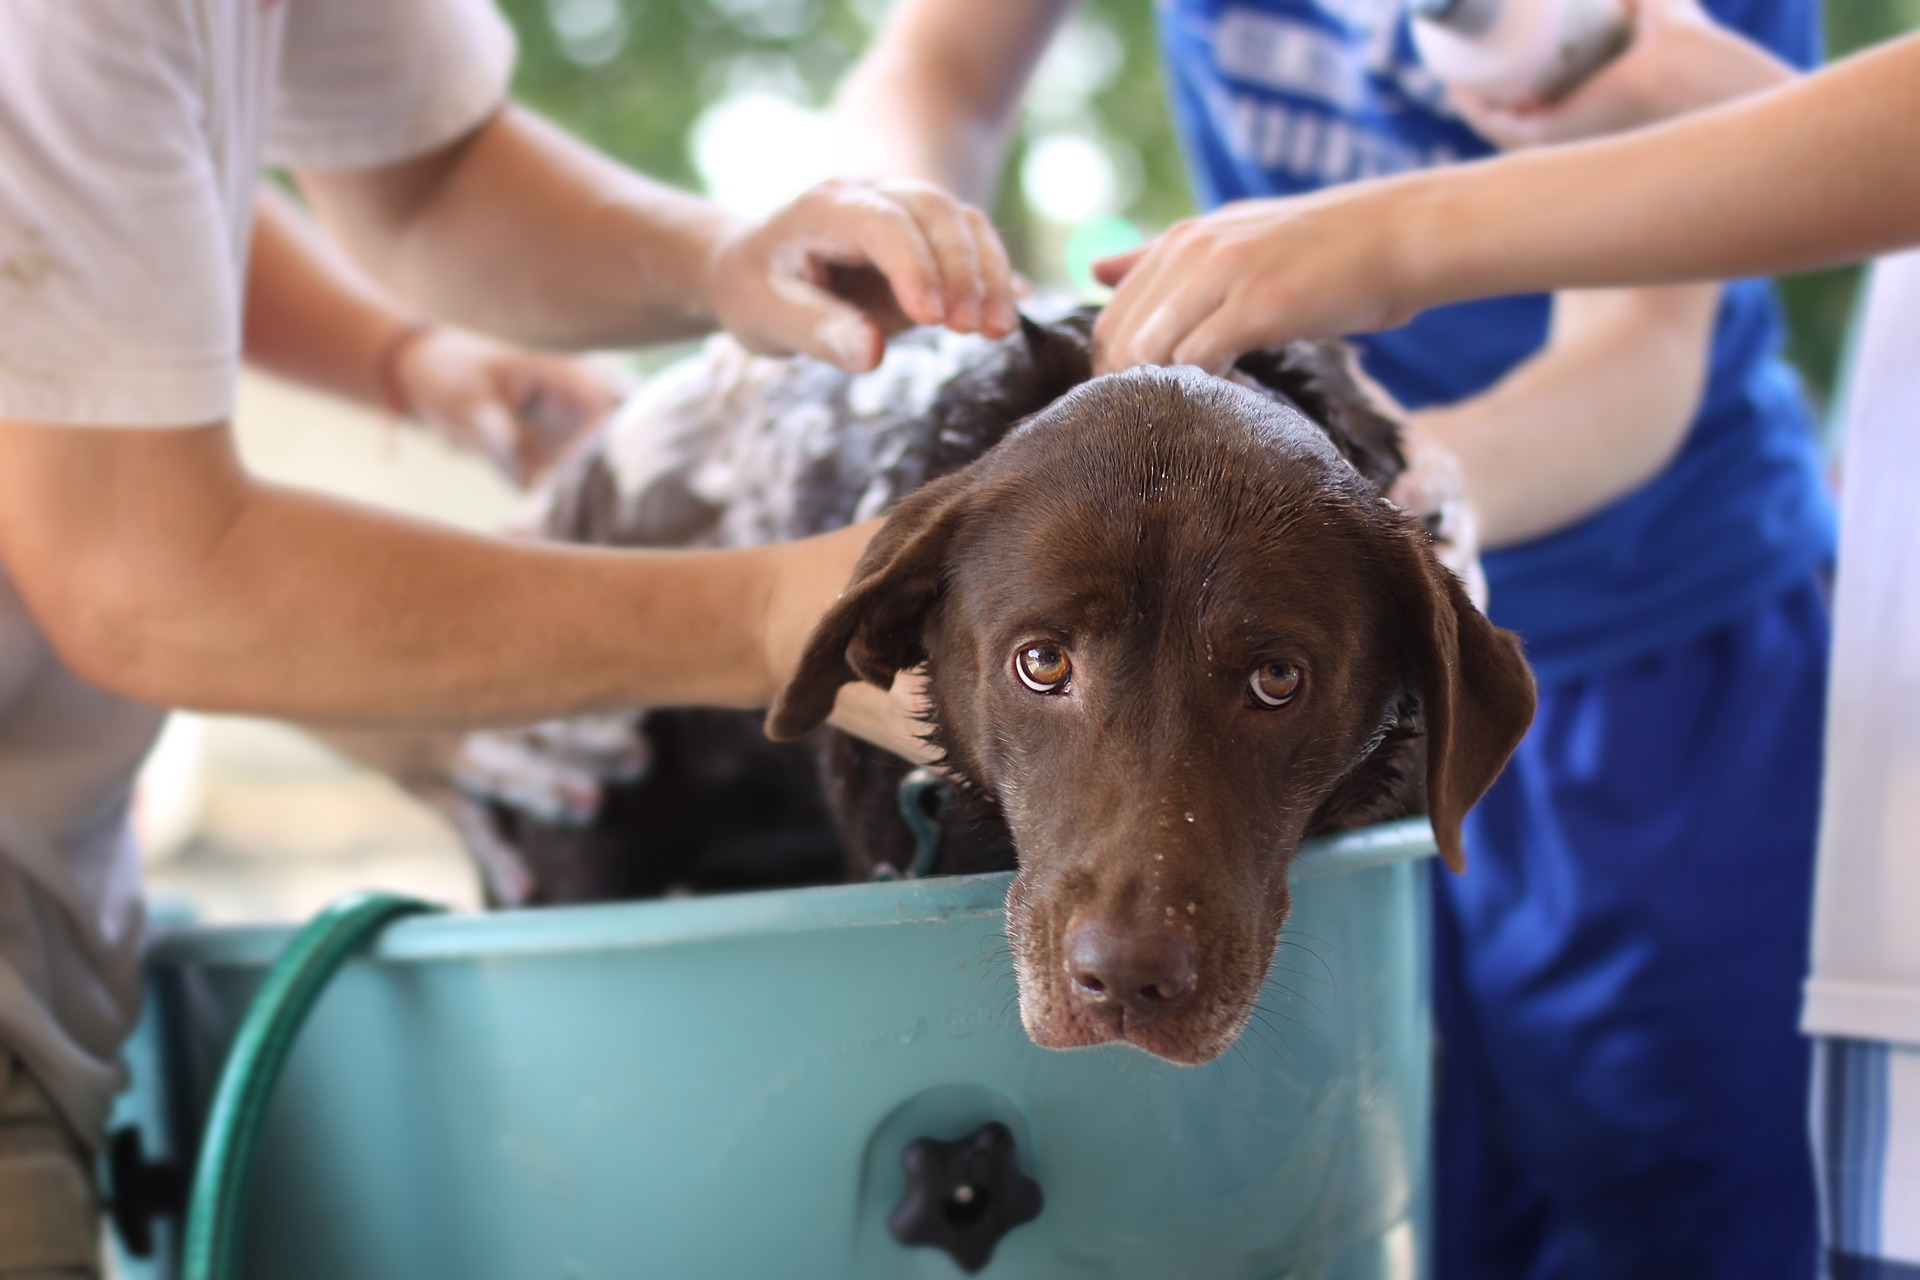 canine grooming - Brown Dog Being Washed In A Tub